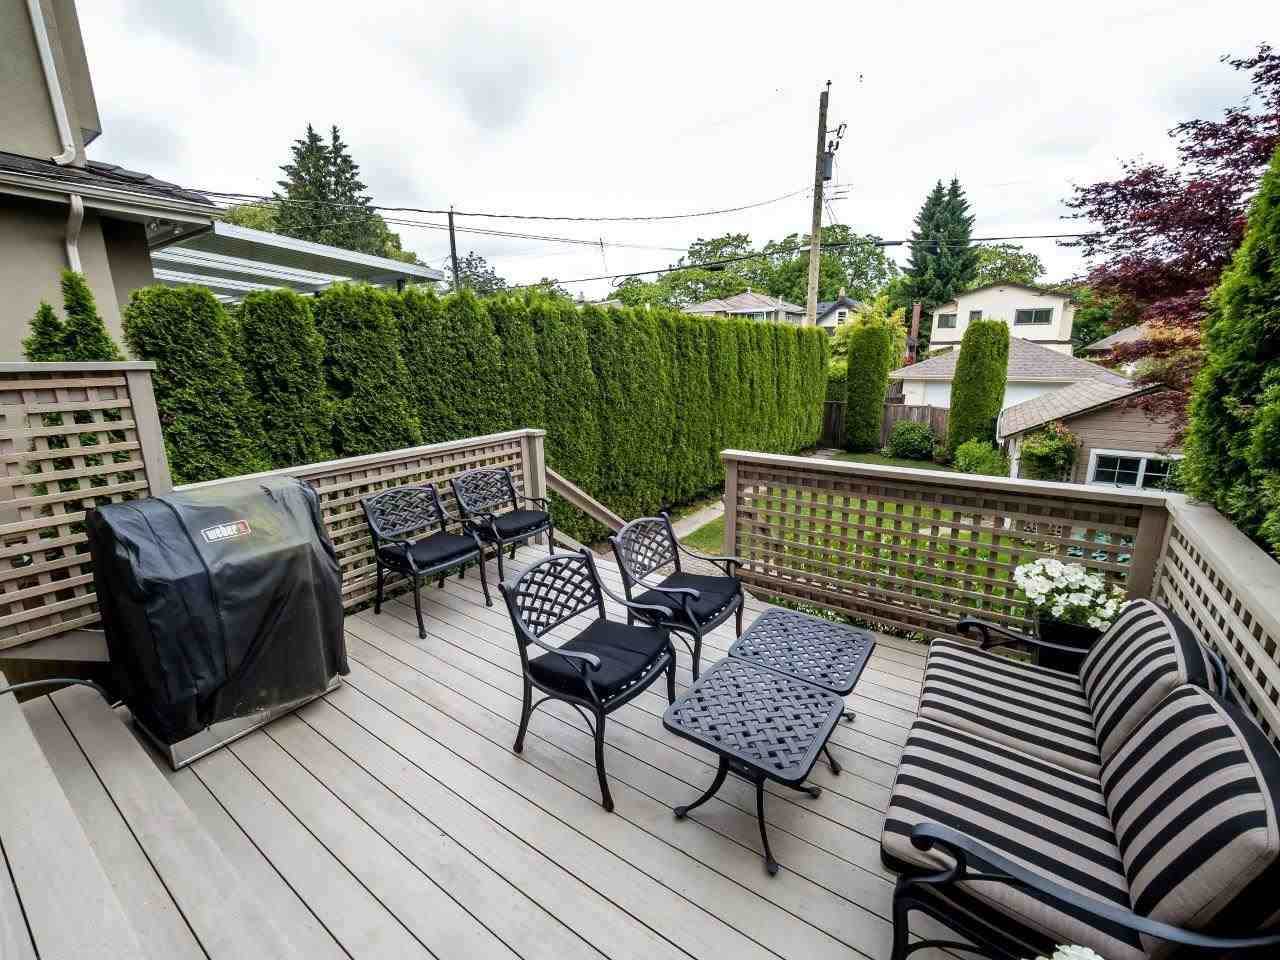 Photo 17: 2953 W 35 Avenue in Vancouver: MacKenzie Heights House for sale (Vancouver West)  : MLS® # R2072134